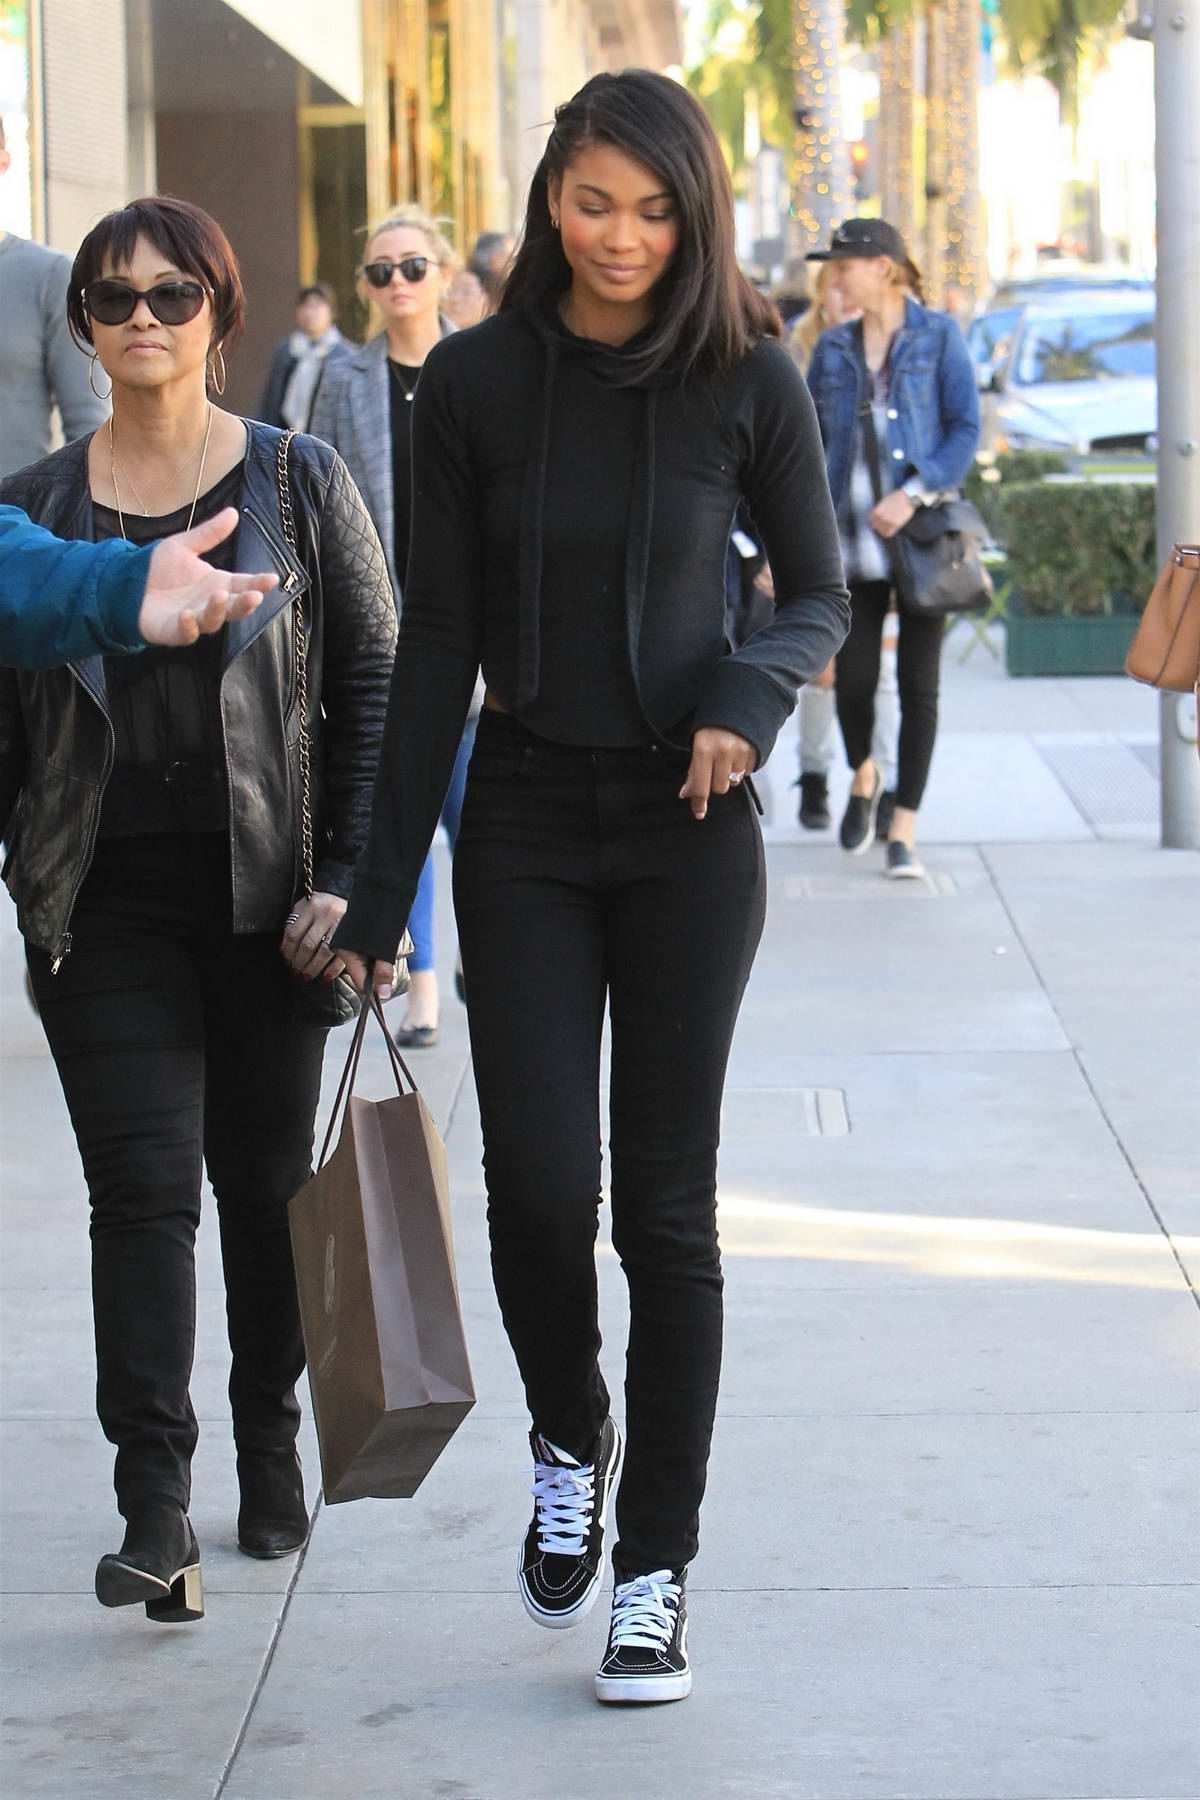 Chanel Iman flashed her new engagement ring while out doing some last-minute holiday shopping with her mom in Beverly Hills, Los Angeles